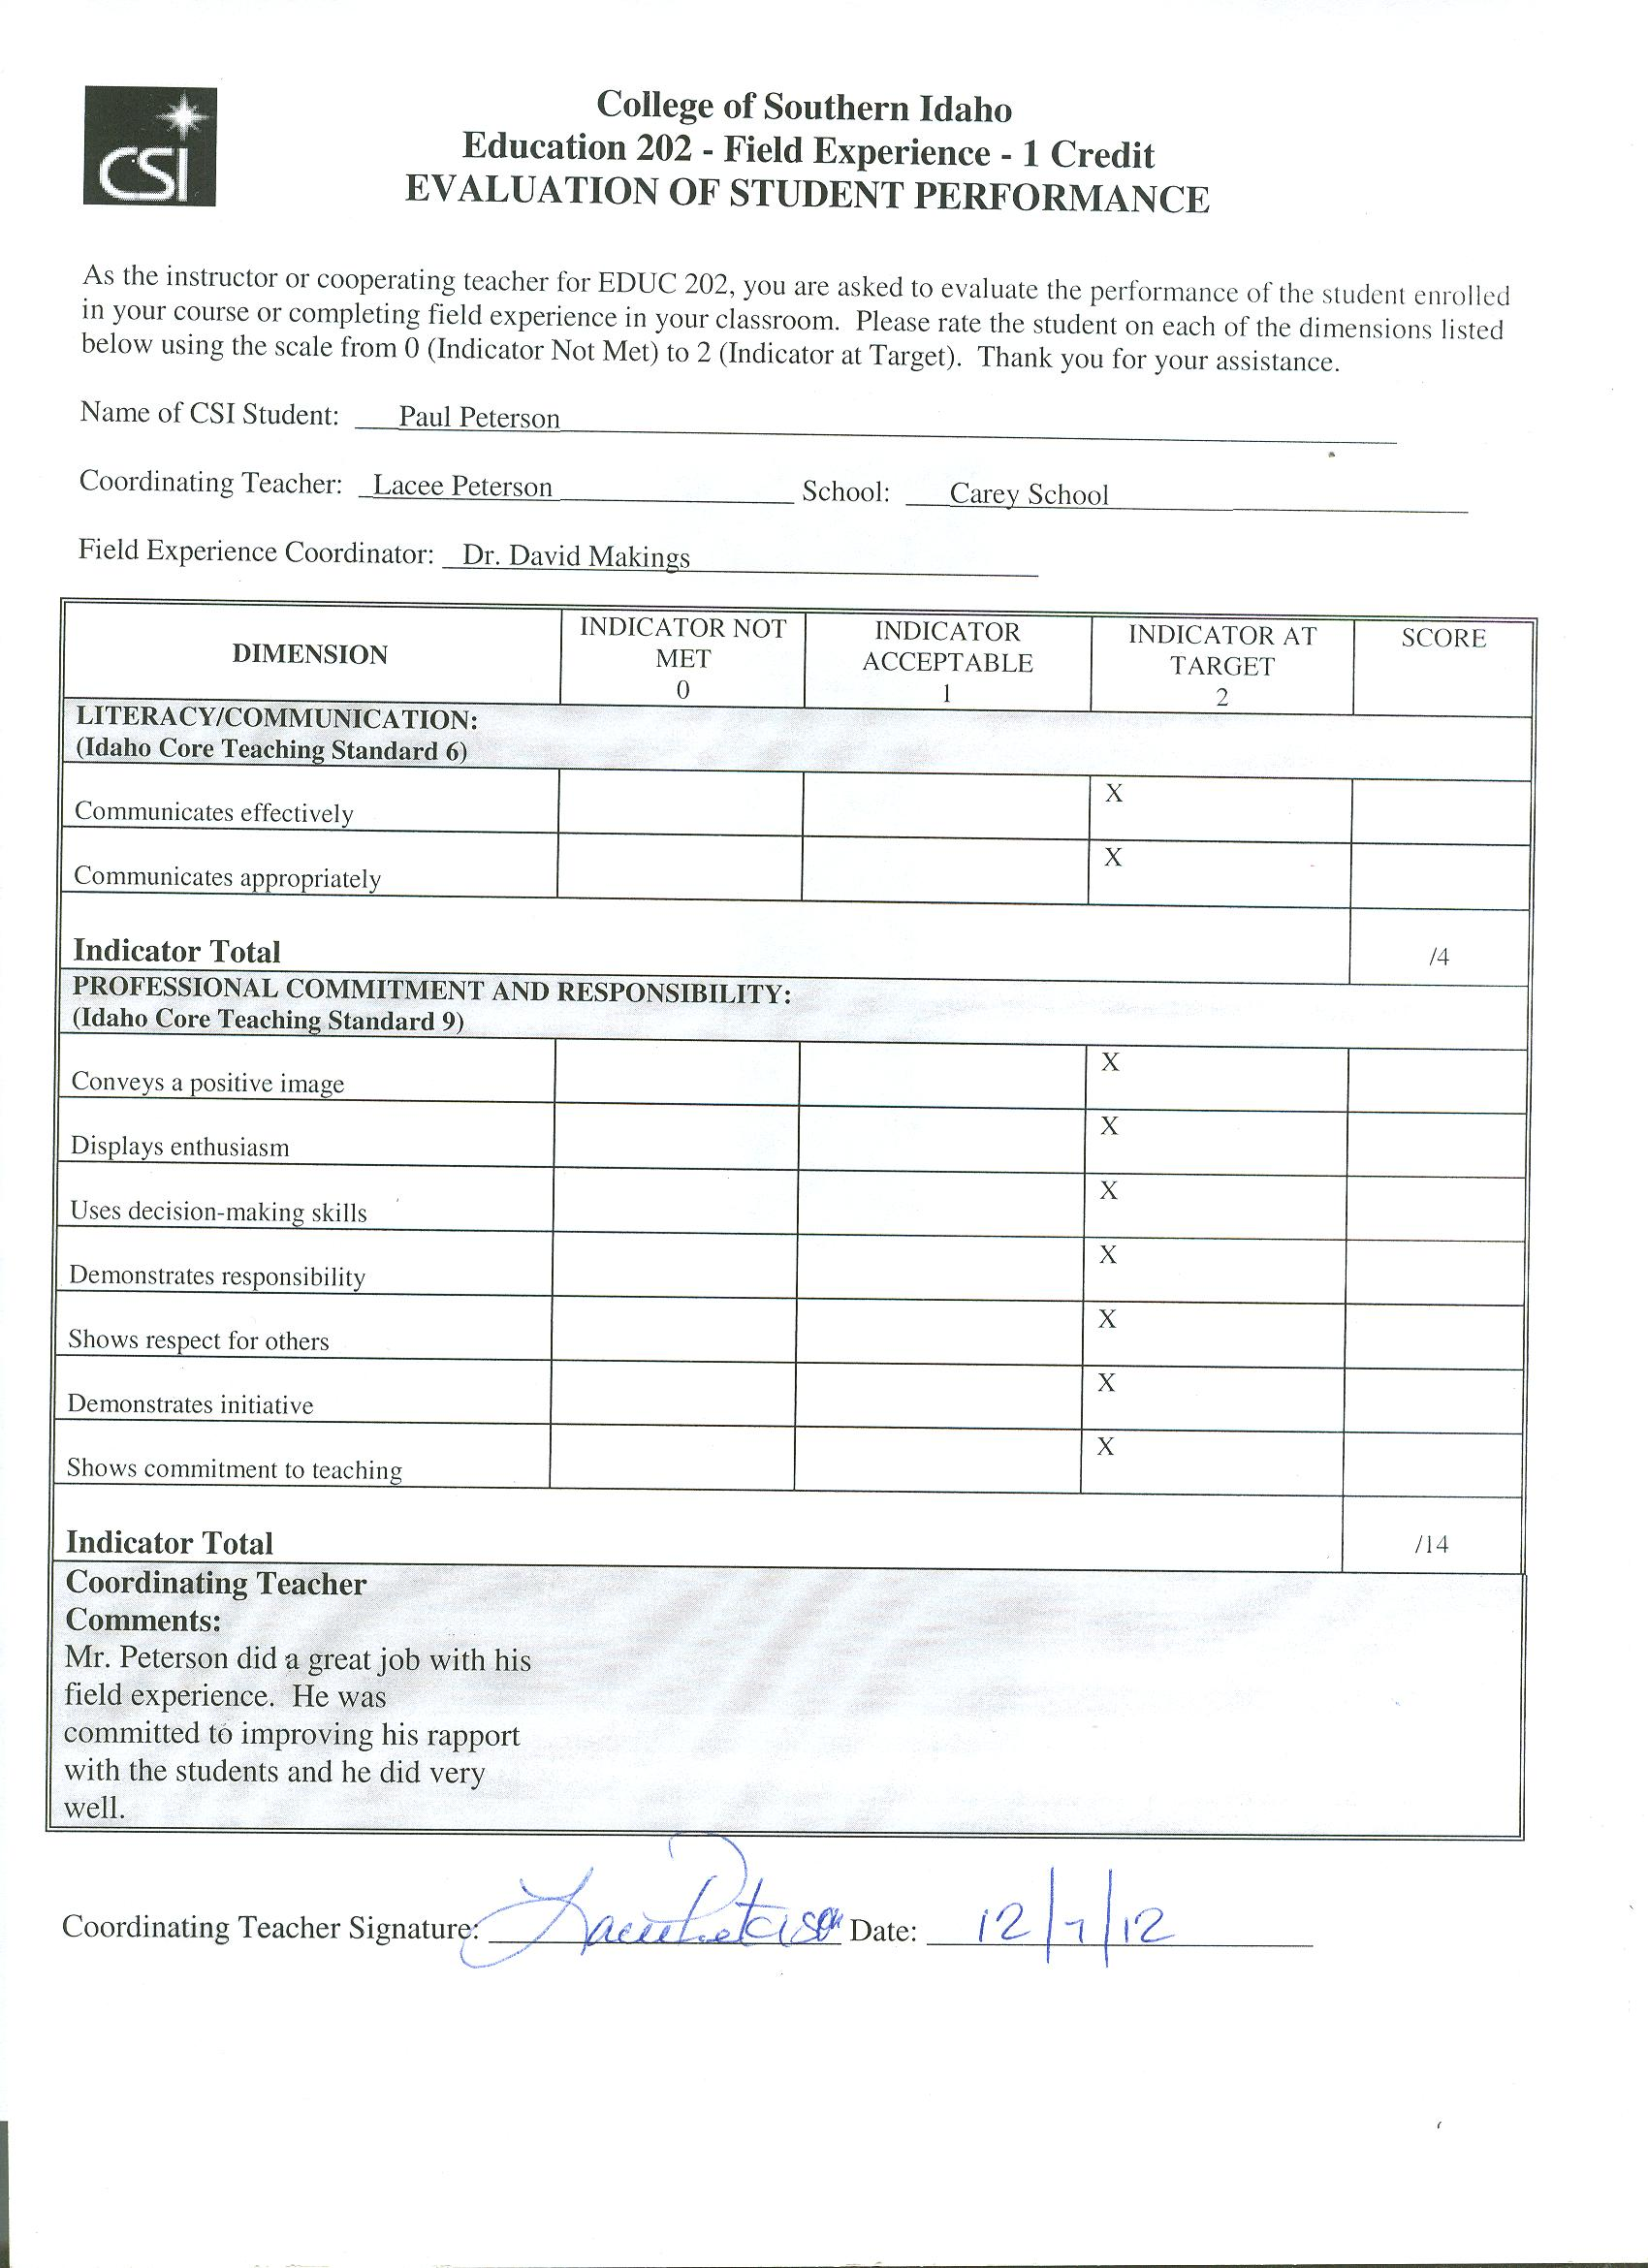 paul peterson s education portfolio table of contents diversity statement of informed beliefs individual differences student profile cover letter resume teacher education questionnaire